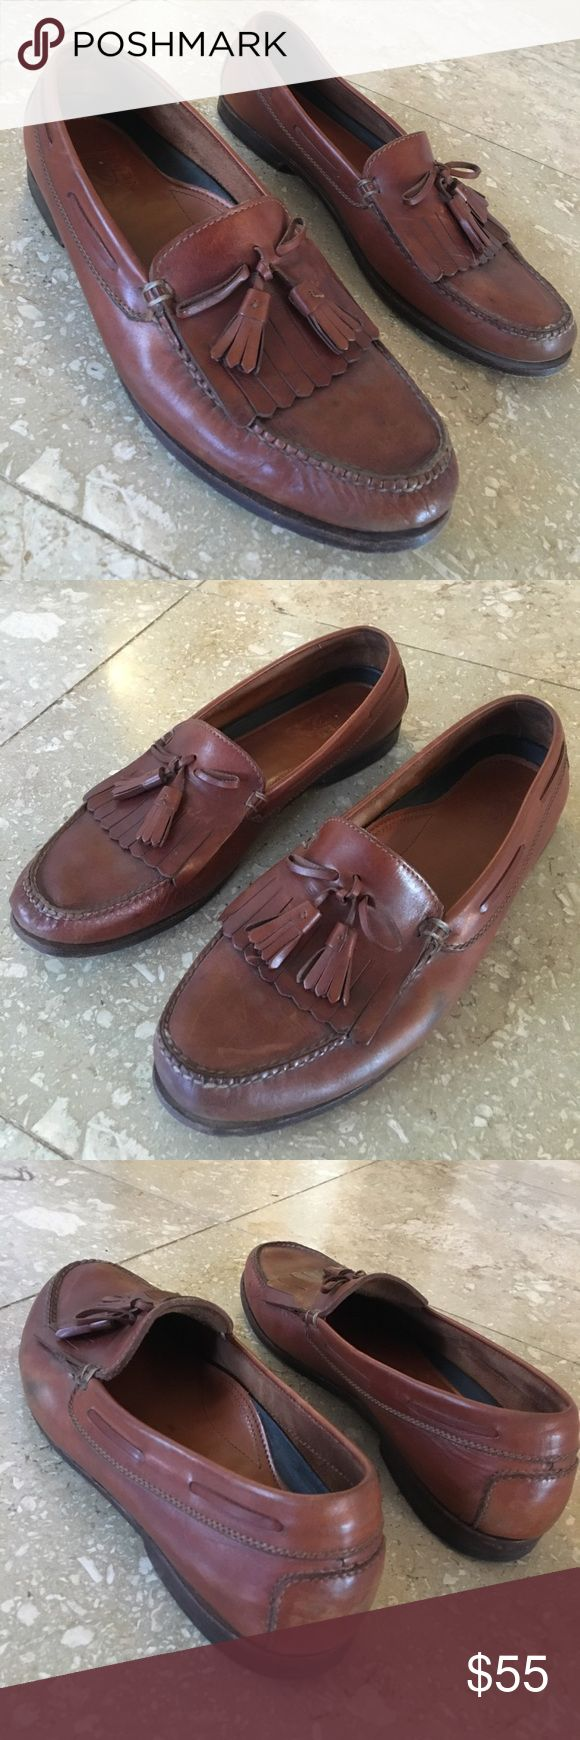 Neil M. Italian loafers Made in Italy. Good used condition. Reddish brown leather. Sz 11.5b. Thanks! 💤💤 Neil M Shoes Loafers & Slip-Ons